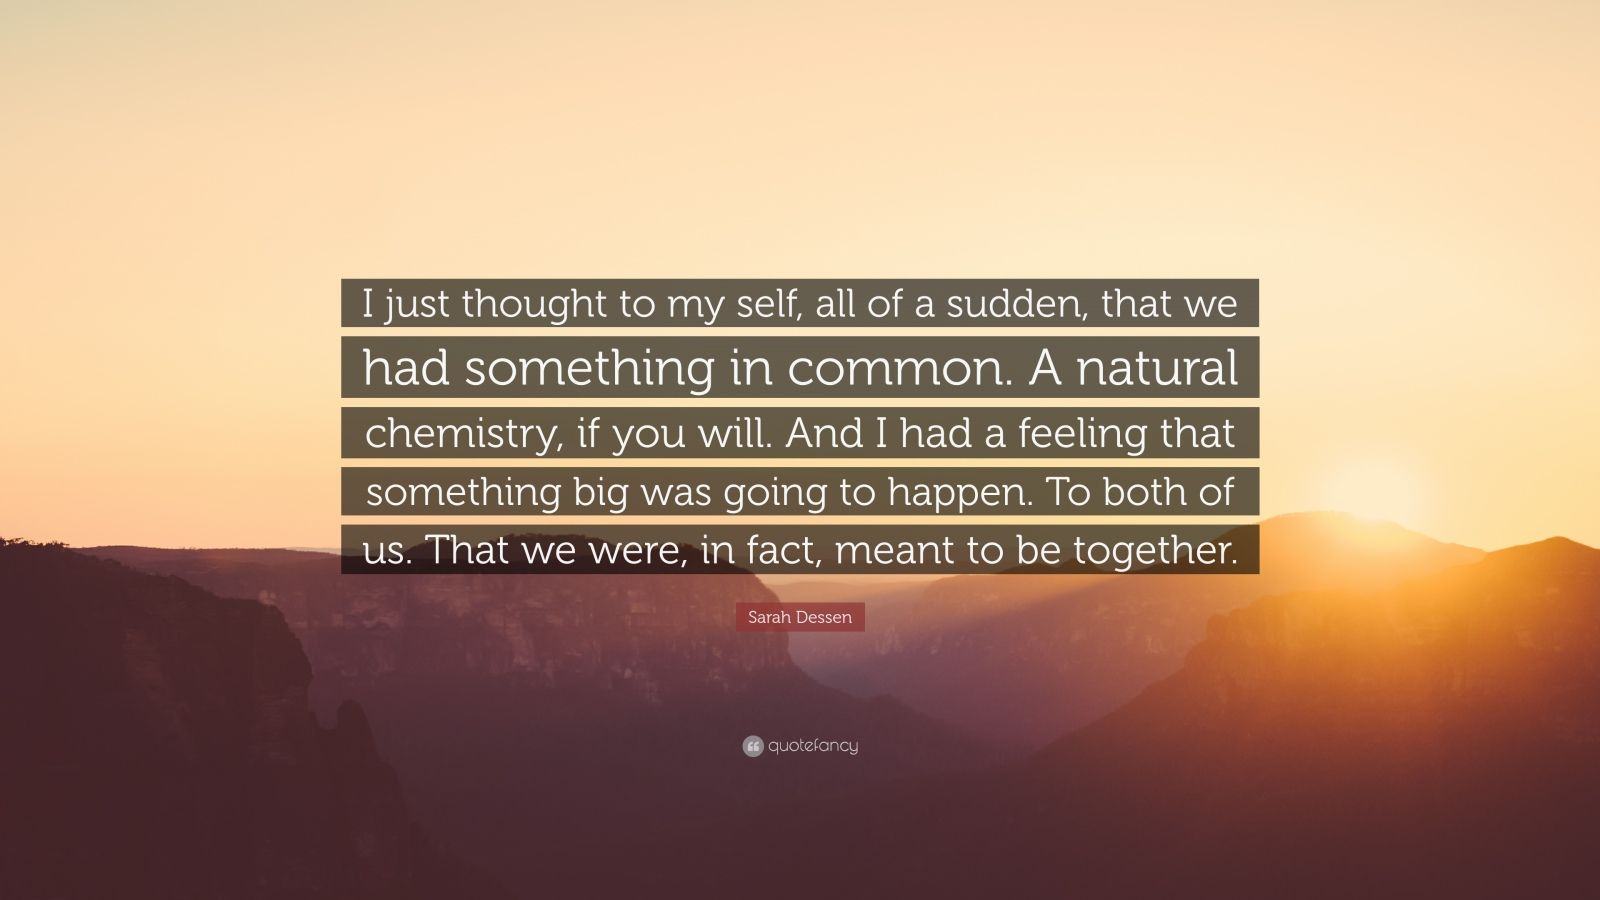 """Sarah Dessen Quote: """"I just thought to my self, all of a sudden, that we had something in common. A natural chemistry, if you will. And I had a feeling that something big was going to happen. To both of us. That we were, in fact, meant to be together."""""""